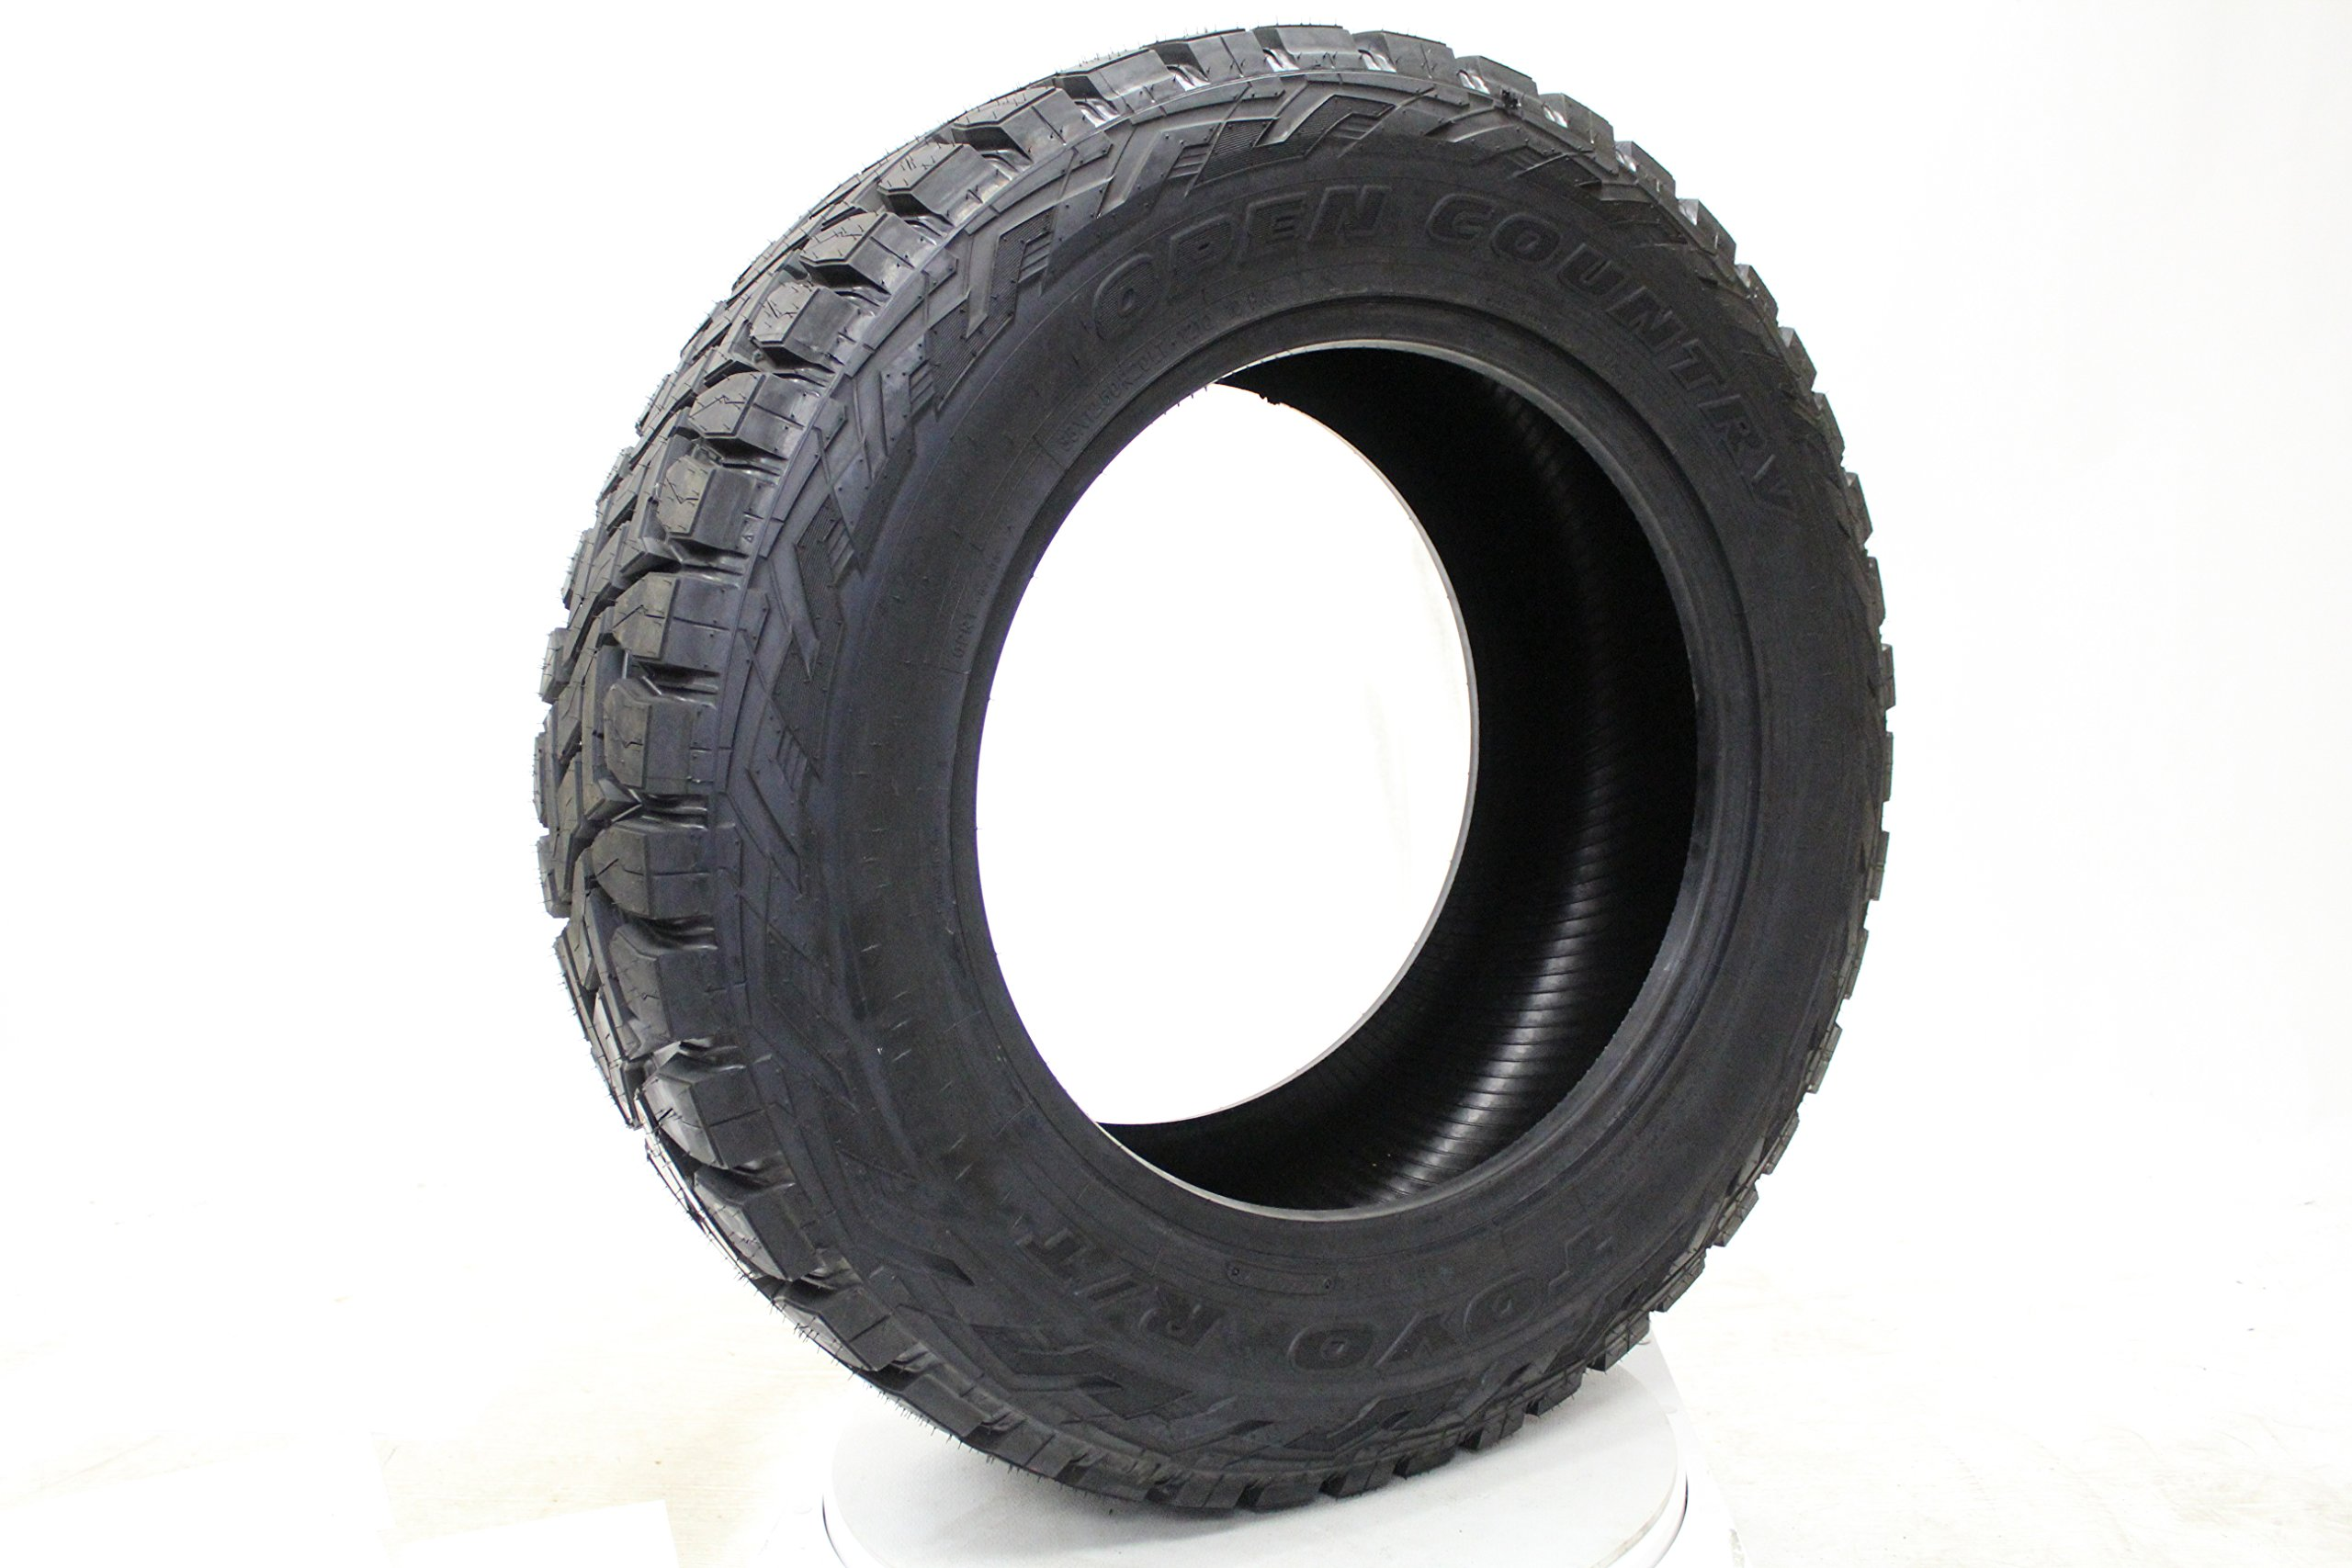 Toyo OPEN COUNTRY R/T All Terrain Radial Tire - 35/12.5R18 123Q by Toyo Tires (Image #1)